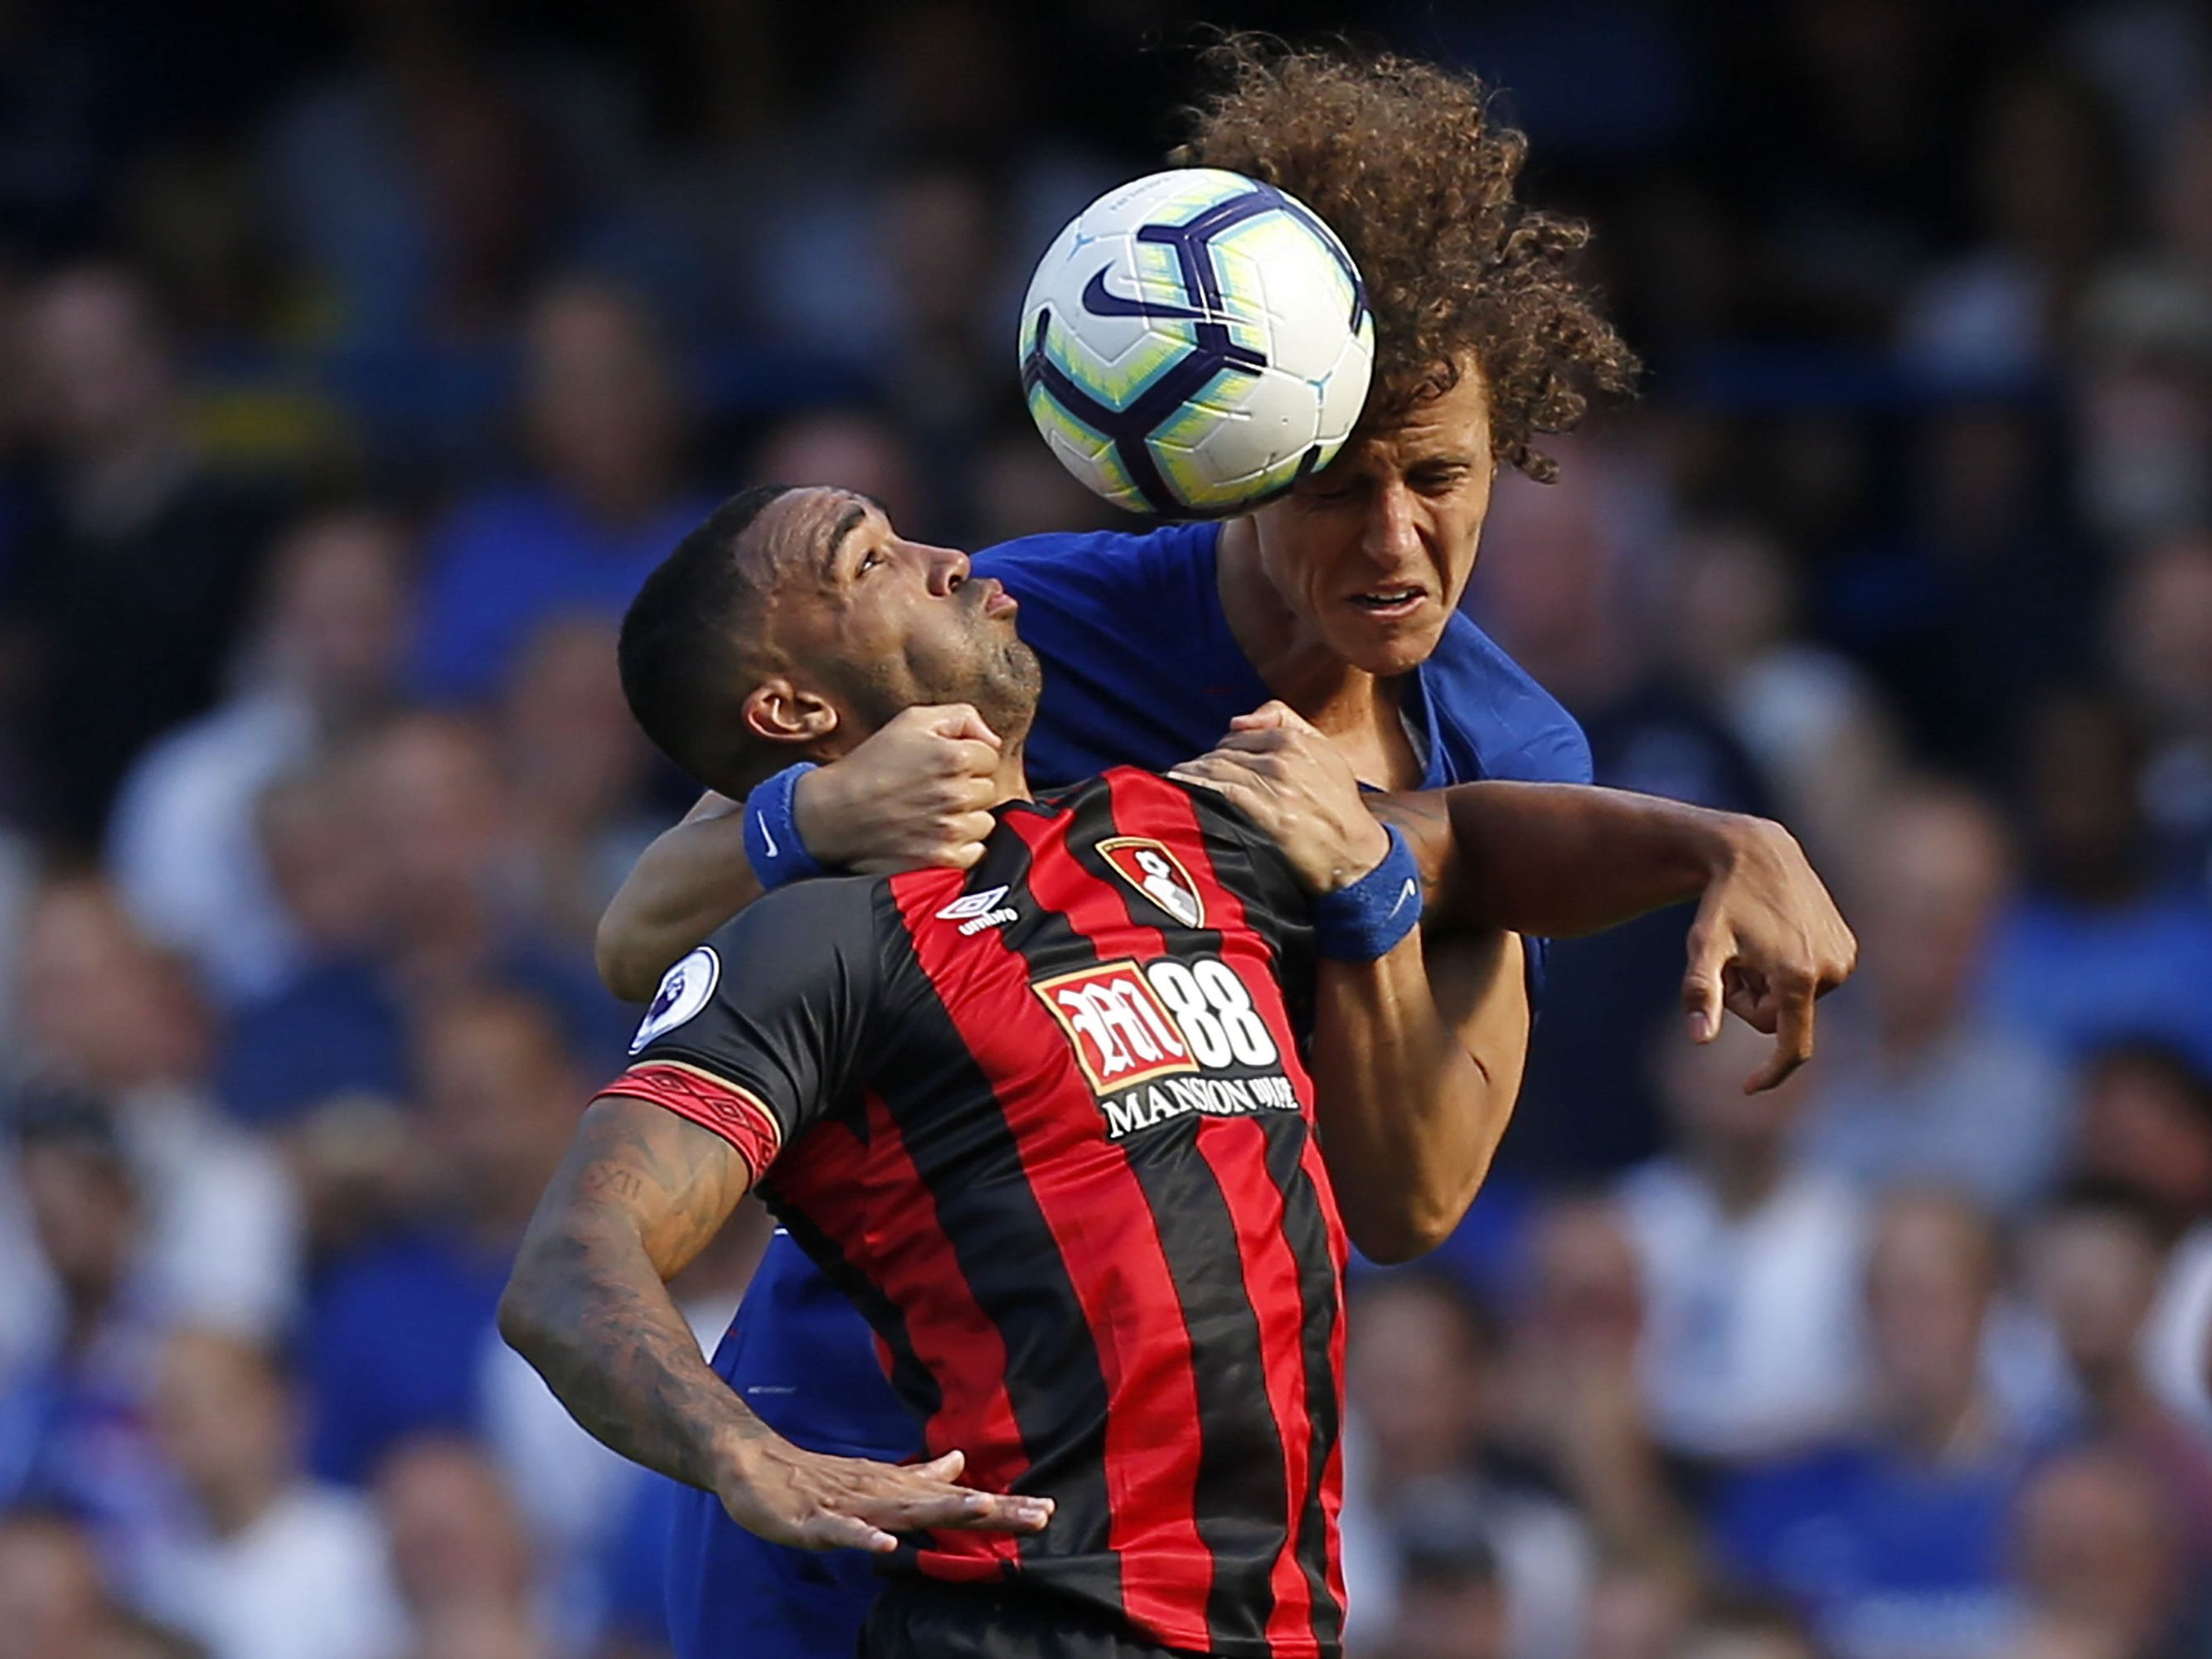 Bournemouth's Callum Wilson (left) vies with Chelsea's David Luiz during the Premier League match at Stamford Bridge in London. Chelsea won the match, 2-0.